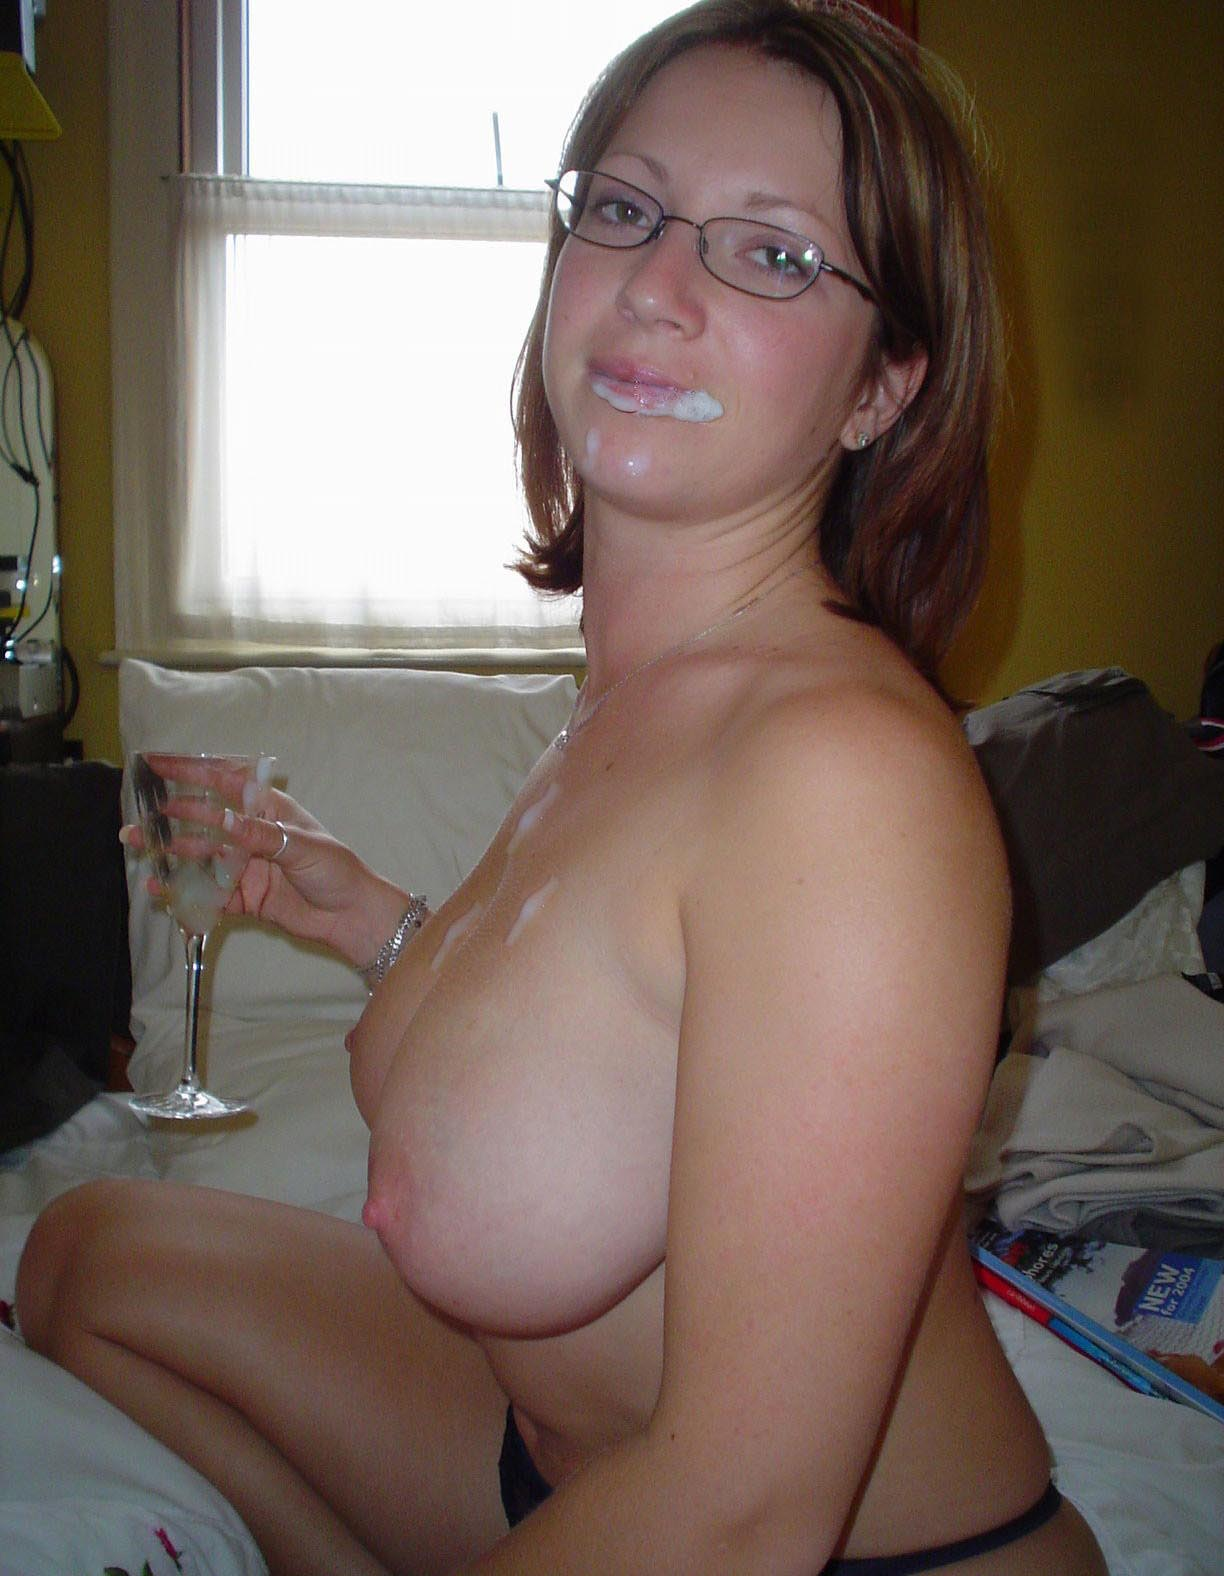 online for homemade amateur submitted milfs we have a huge collection